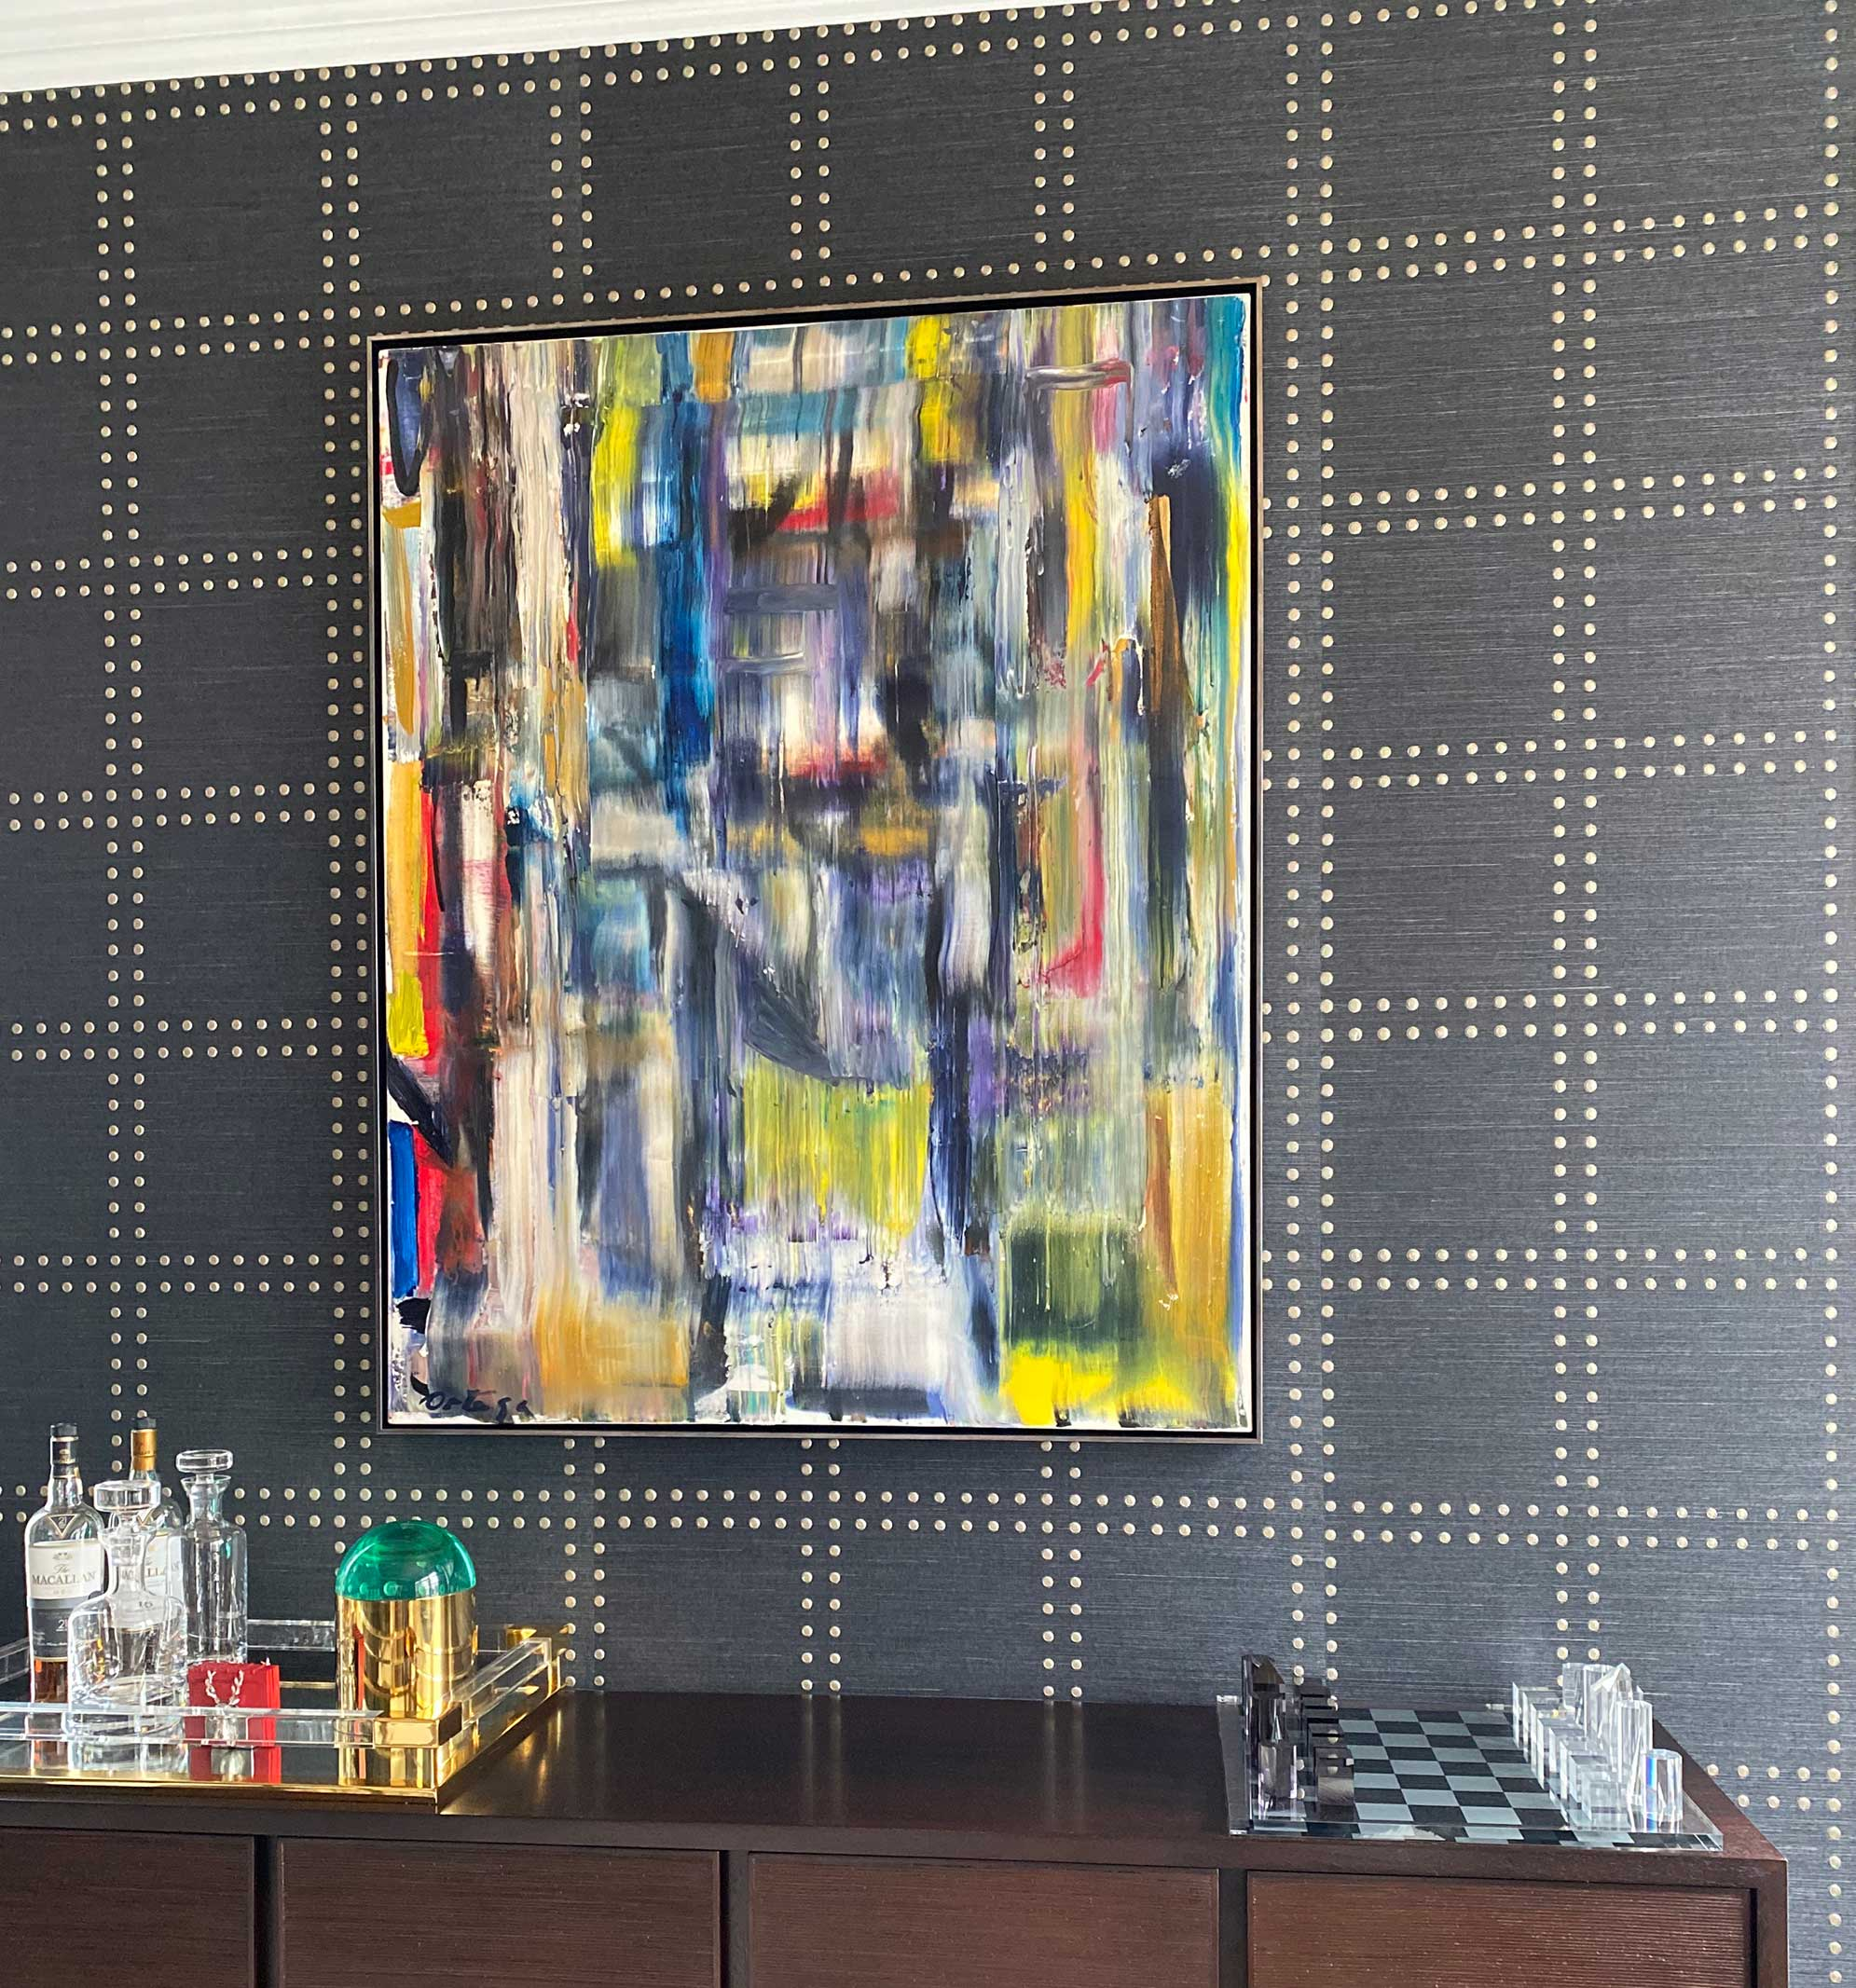 Art and Accessories selection by Kathryn Cook Interiors